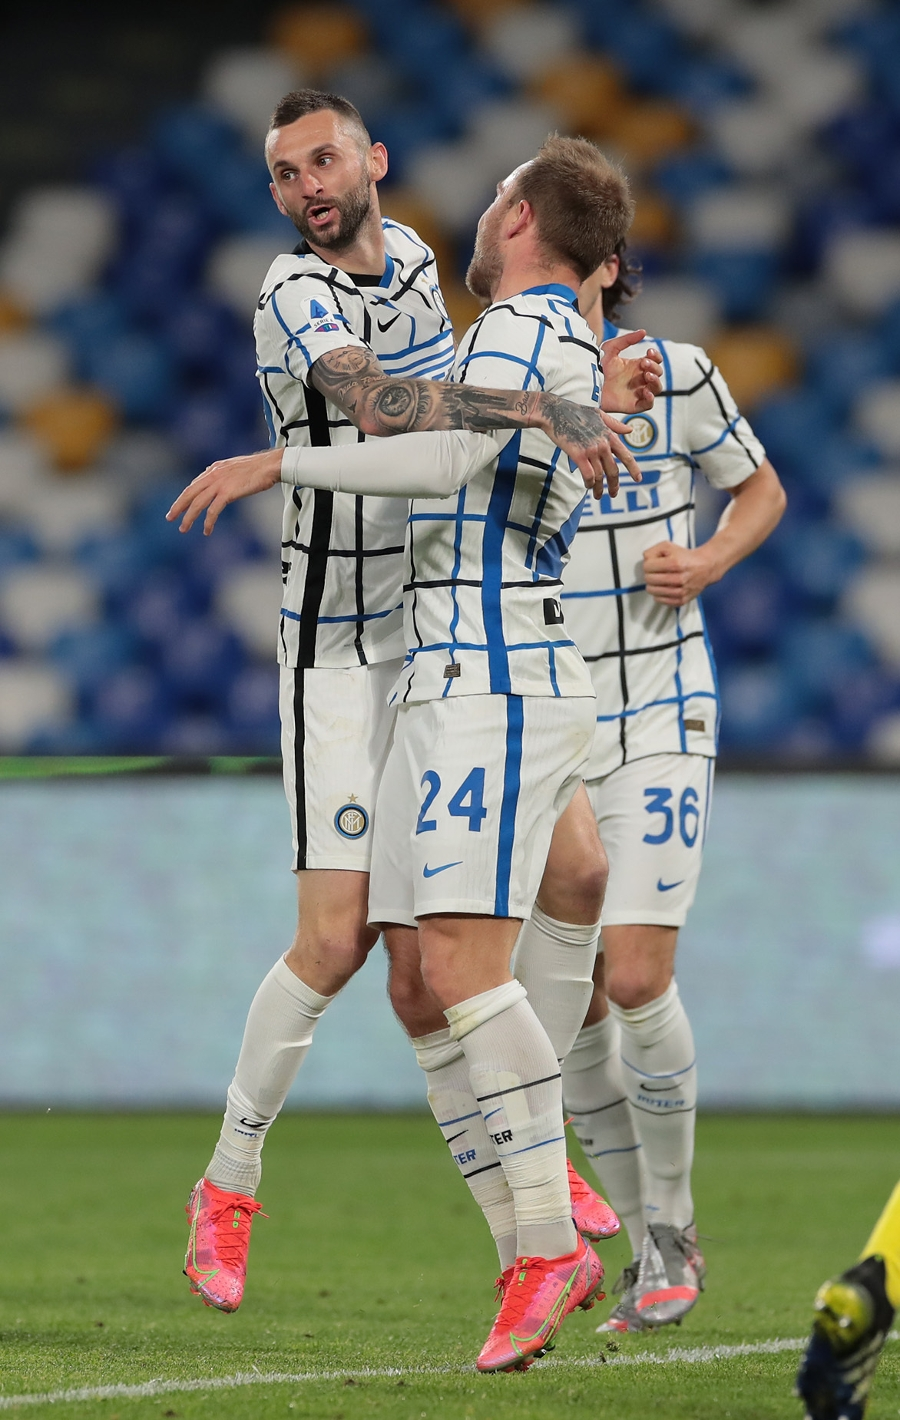 Napoli 1-1 Inter | The photos from this evening's draw